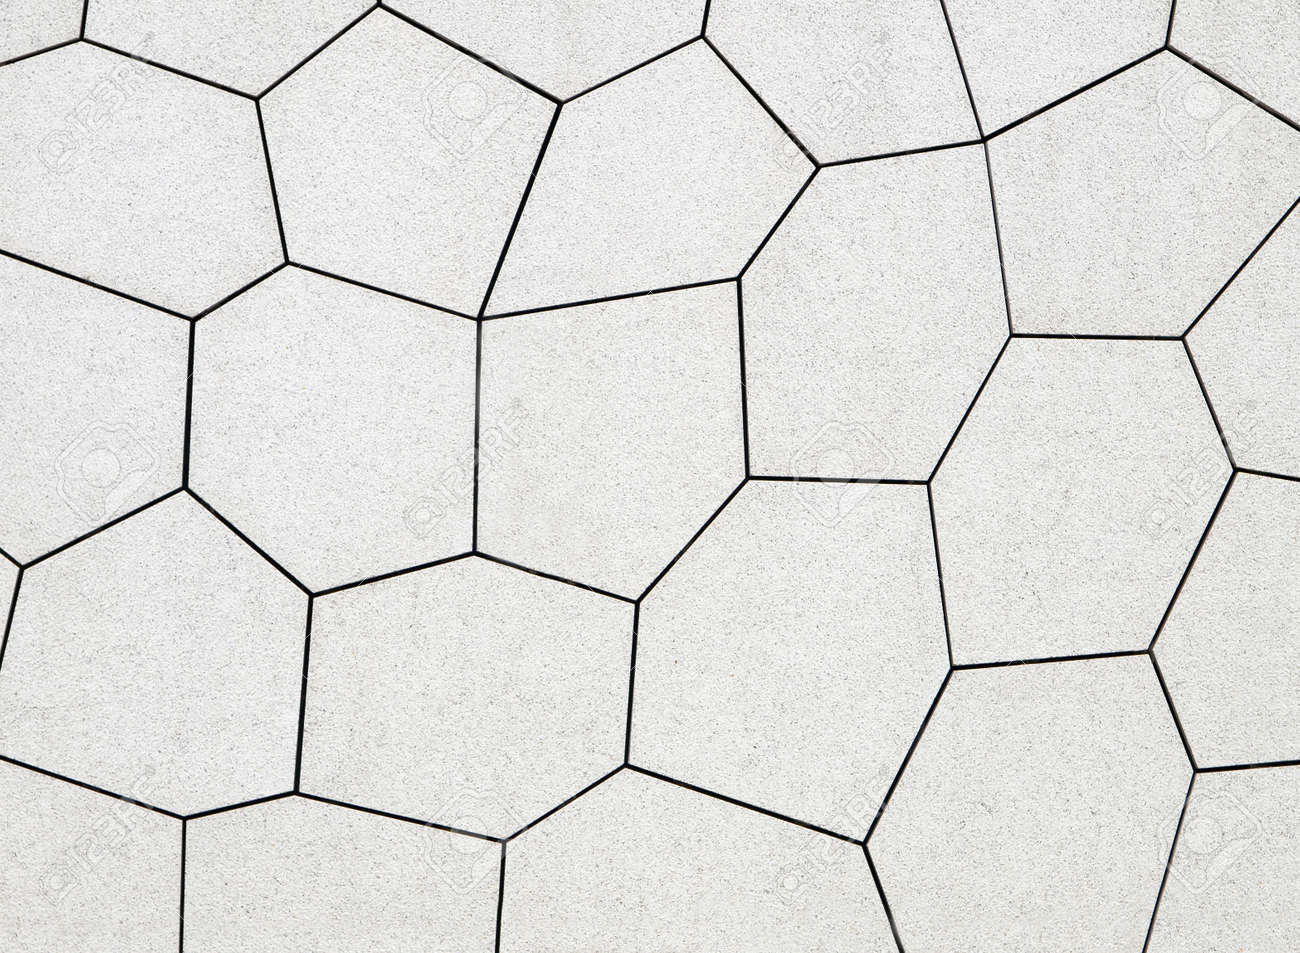 Stone Wall Tiles With Abstract Geometric Shapes Stock Photo, Picture ...